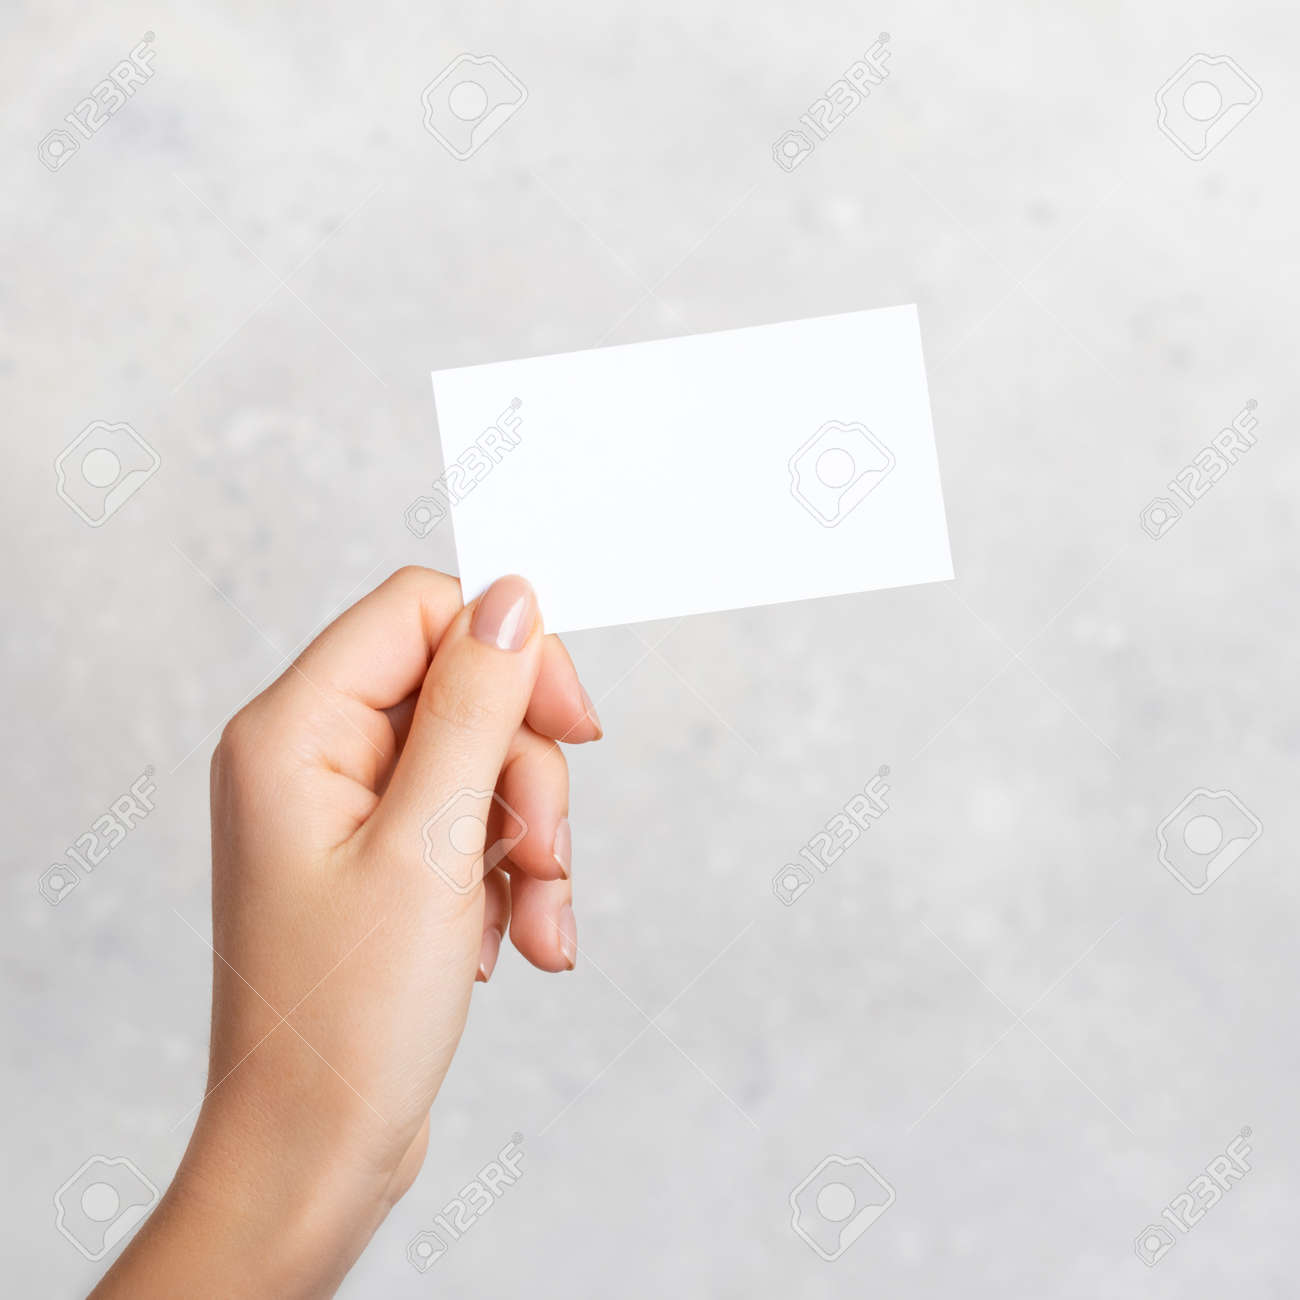 Female hand holding a blank business card, cutaway on gray concrete background with copy space. - 156369746